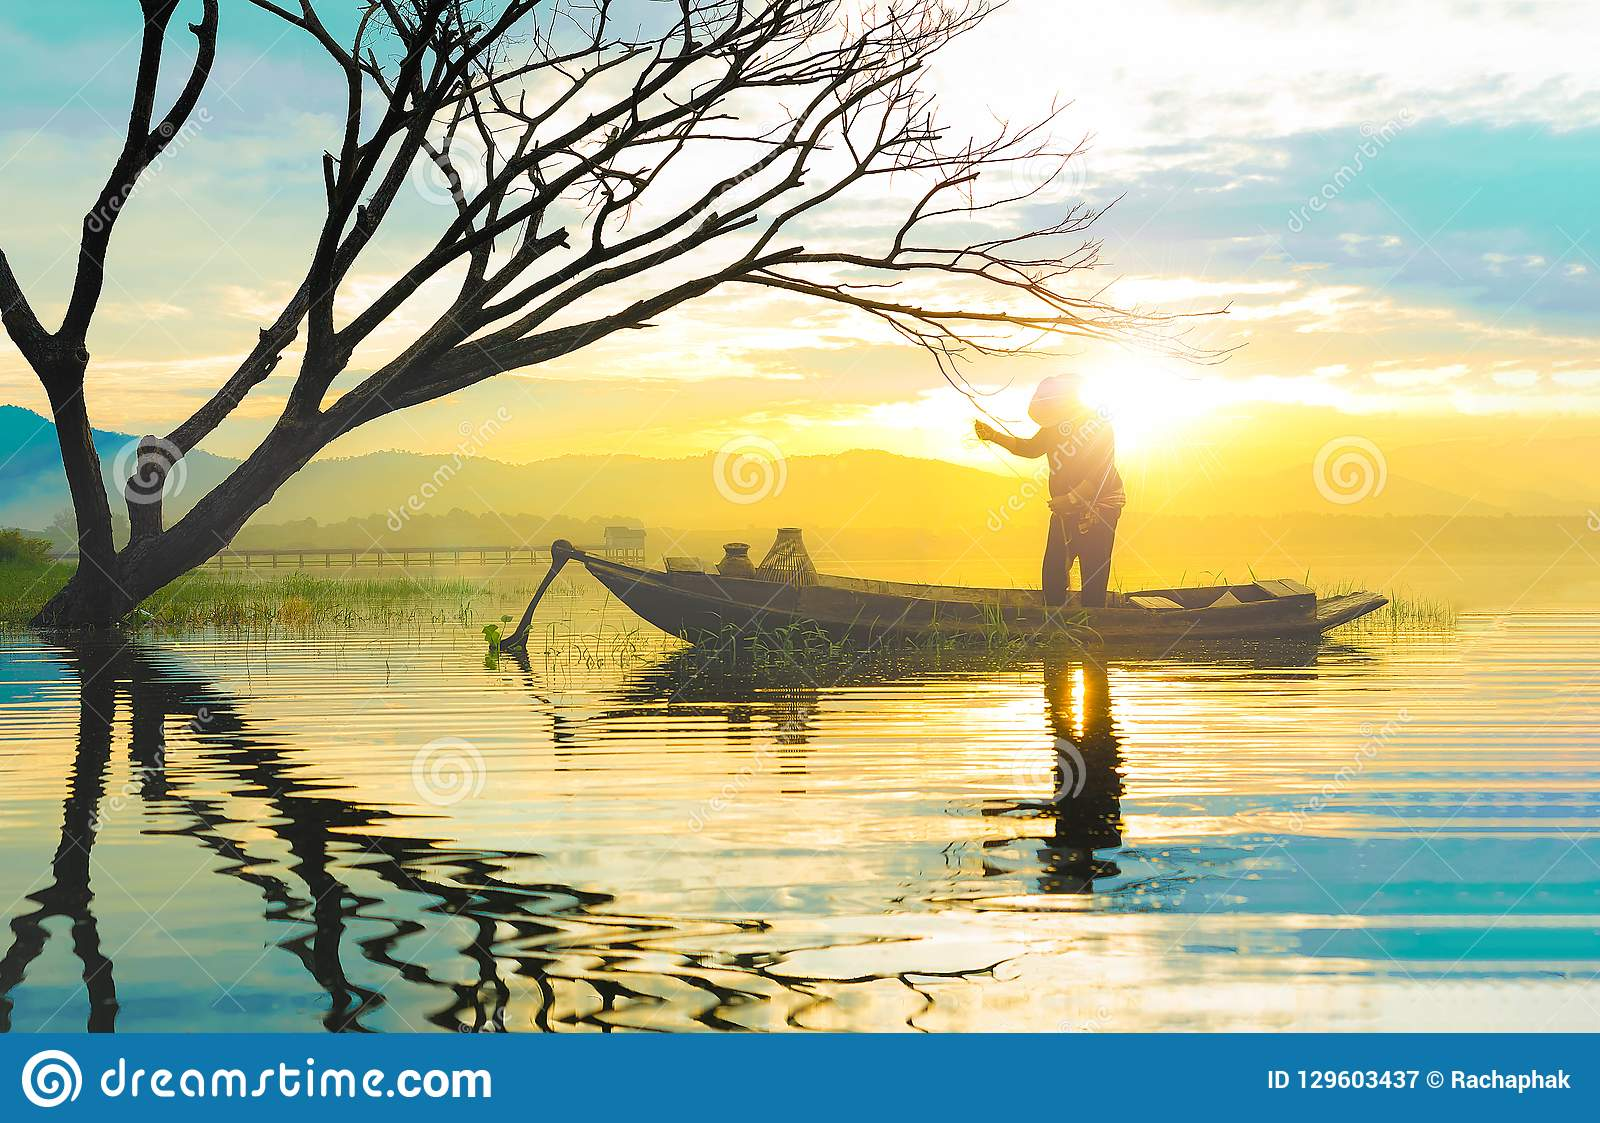 Silhouette of fisherman using fishnet standing in small boat ear